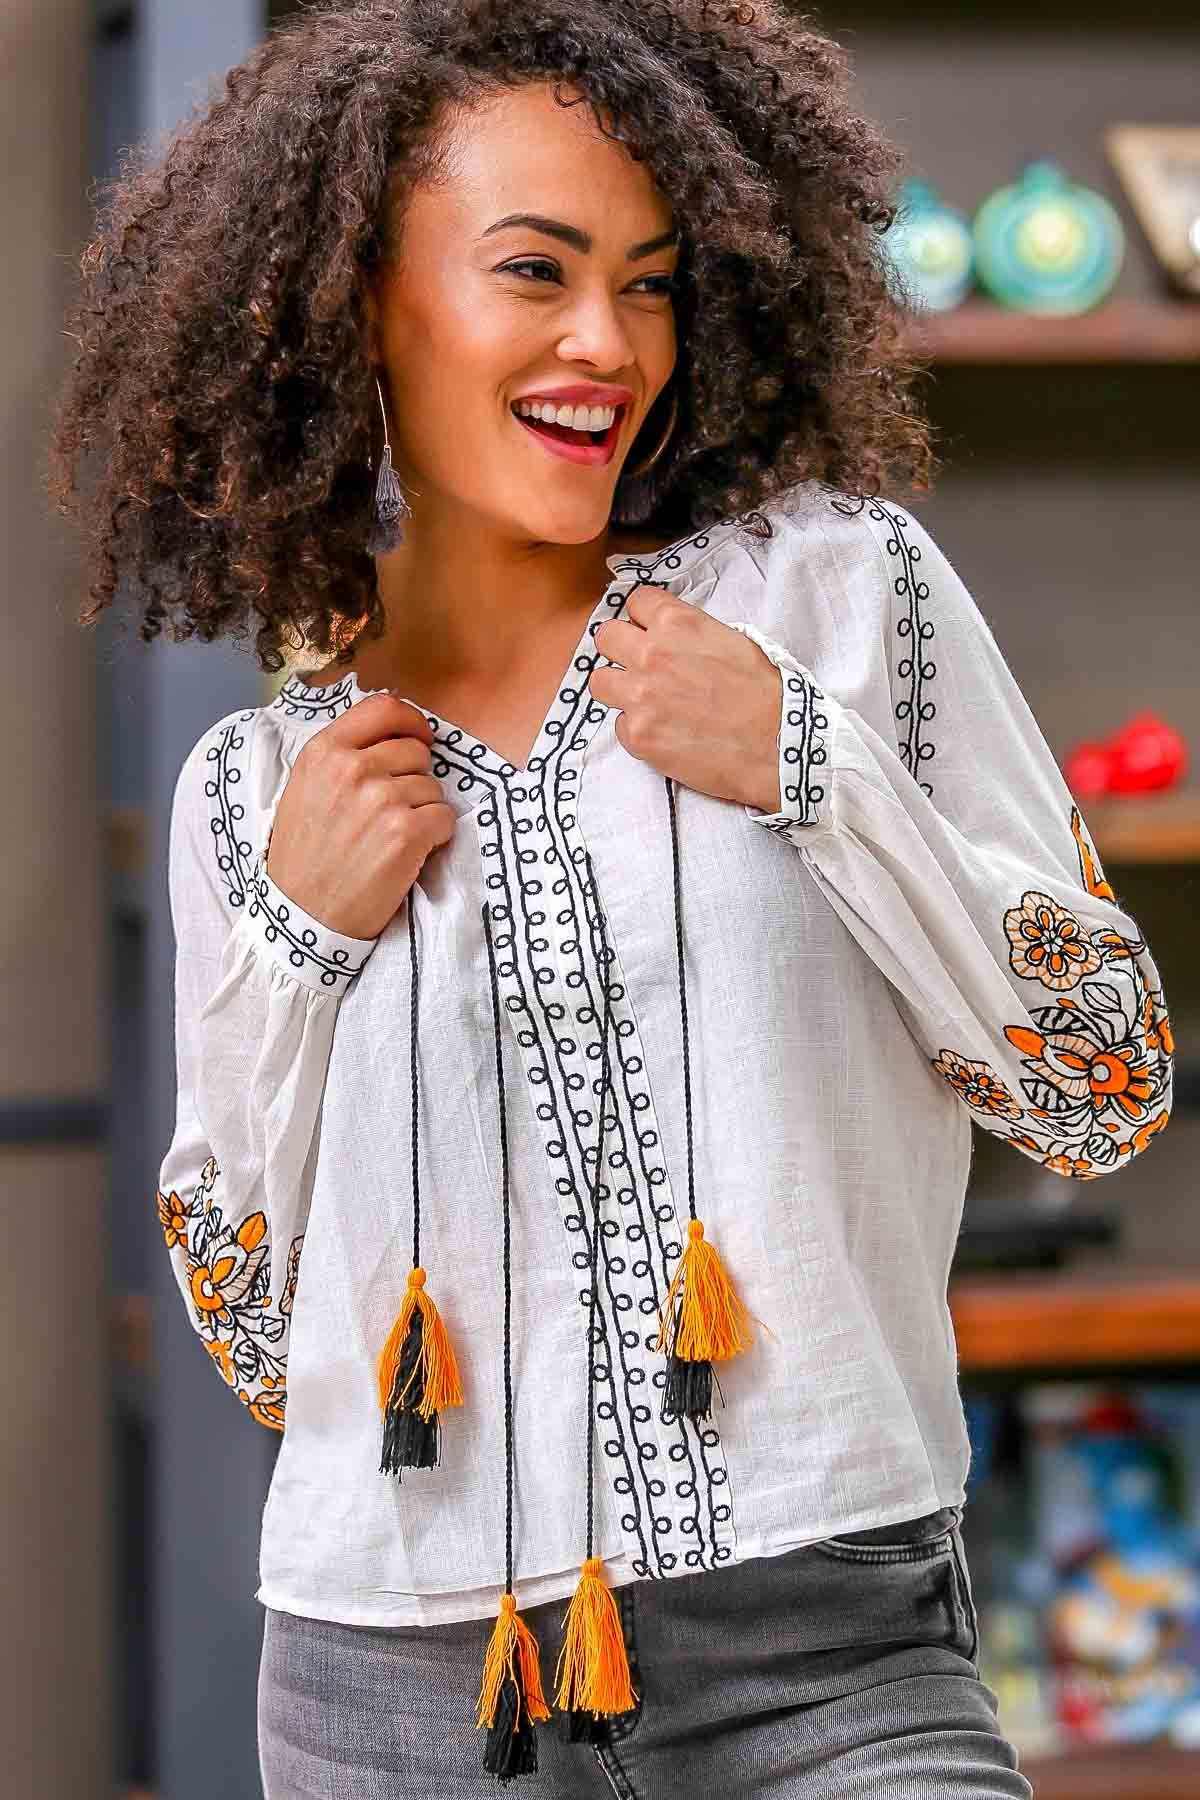 Bohemian lilies flowers embroidered collar and tie blouse with tassel tie detail